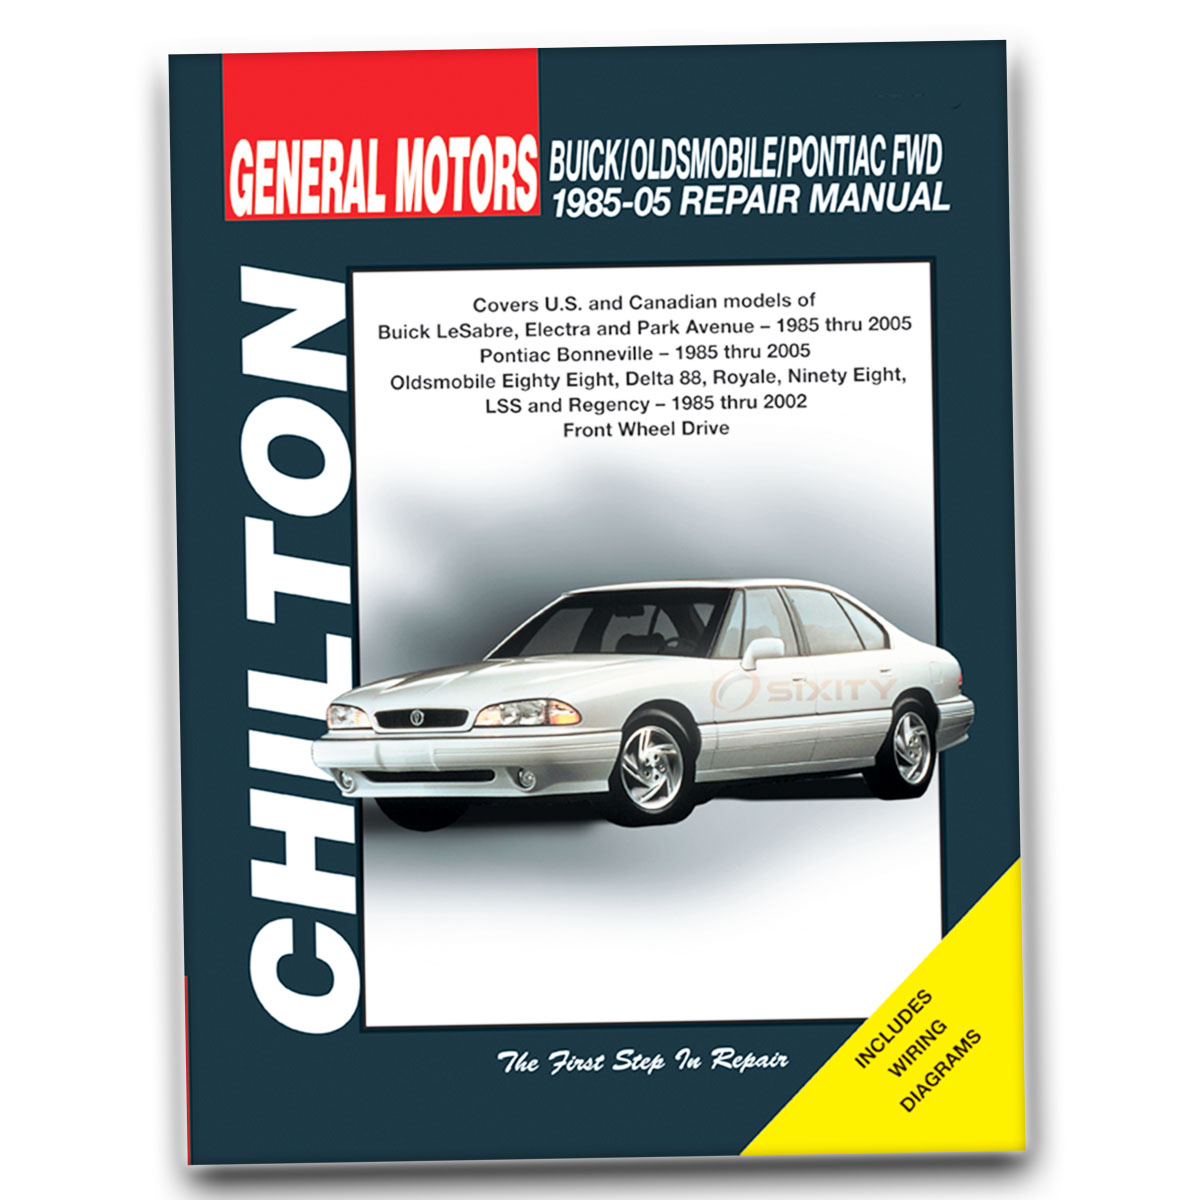 1997 cavalier repair manual free owners manual u2022 rh wordworksbysea com 1999 Cavalier 1999 Cavalier